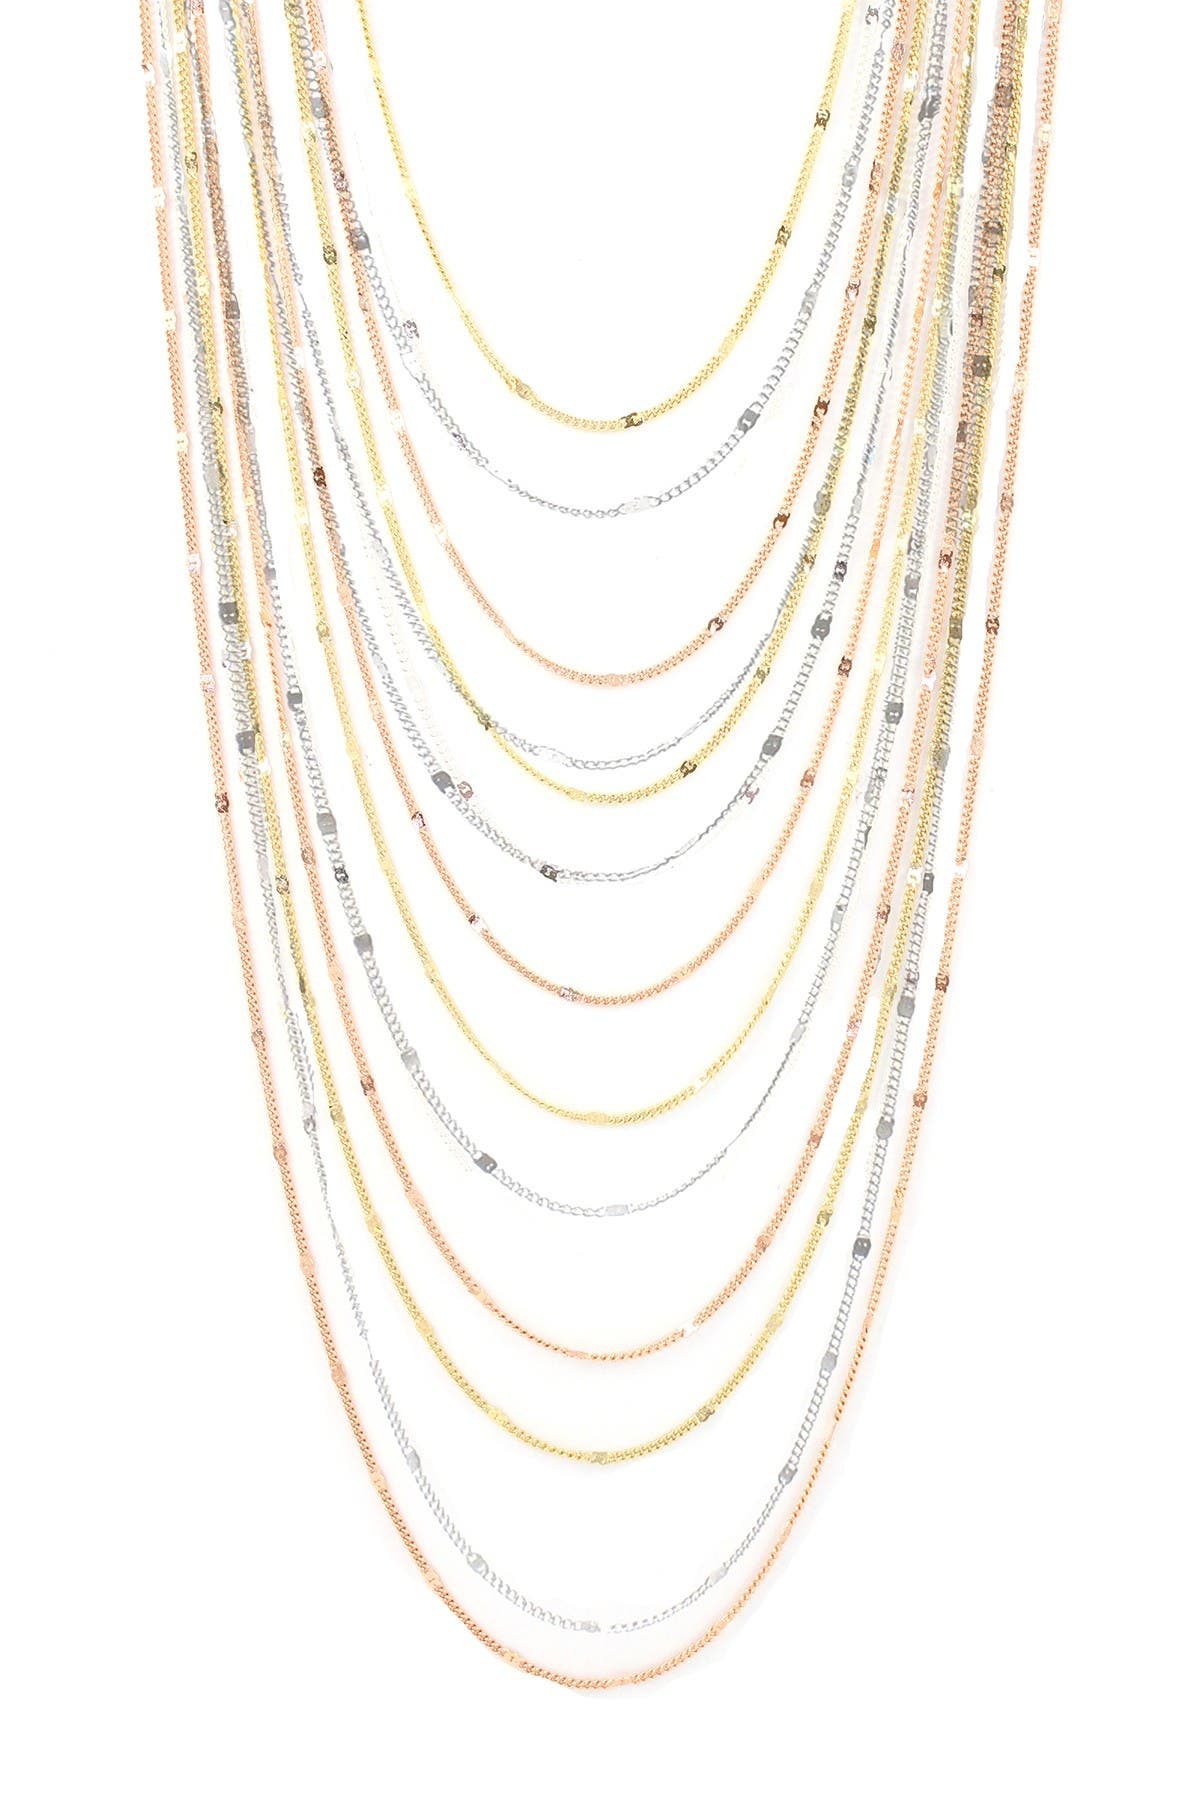 Image of Savvy Cie 18K Gold Tri-Color Multi-Strand Layered Necklace